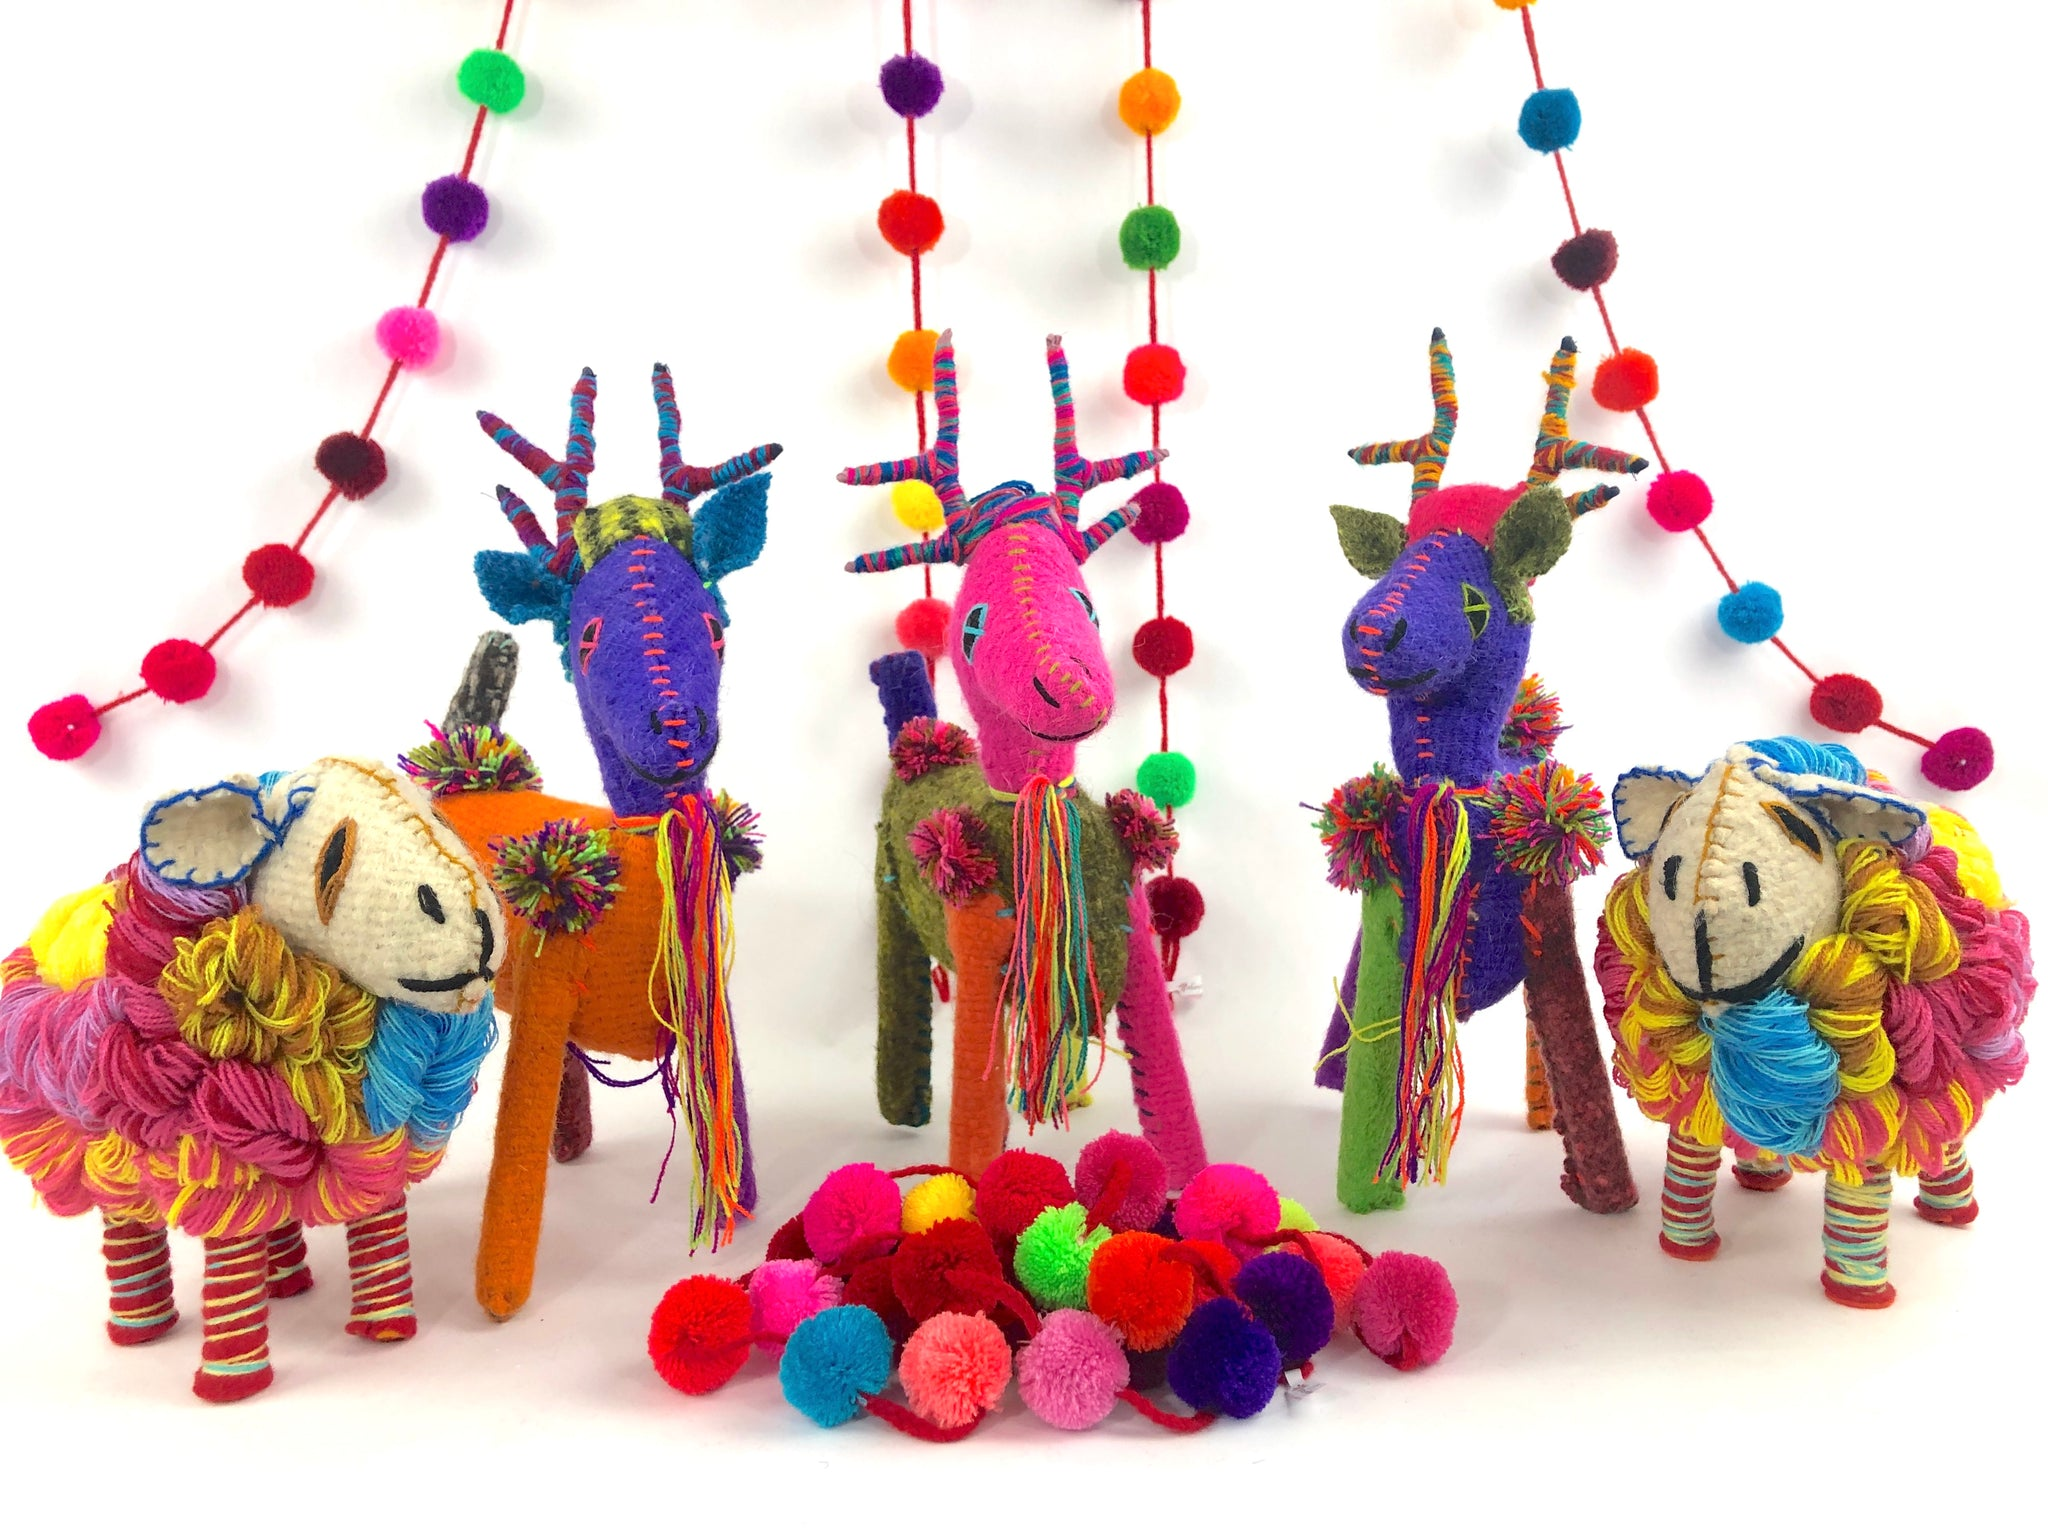 Colorful Mexican holiday decorations, colorful reindeer, Mexican folk art, pompom chains, fair trade Mexican Christmas decorations